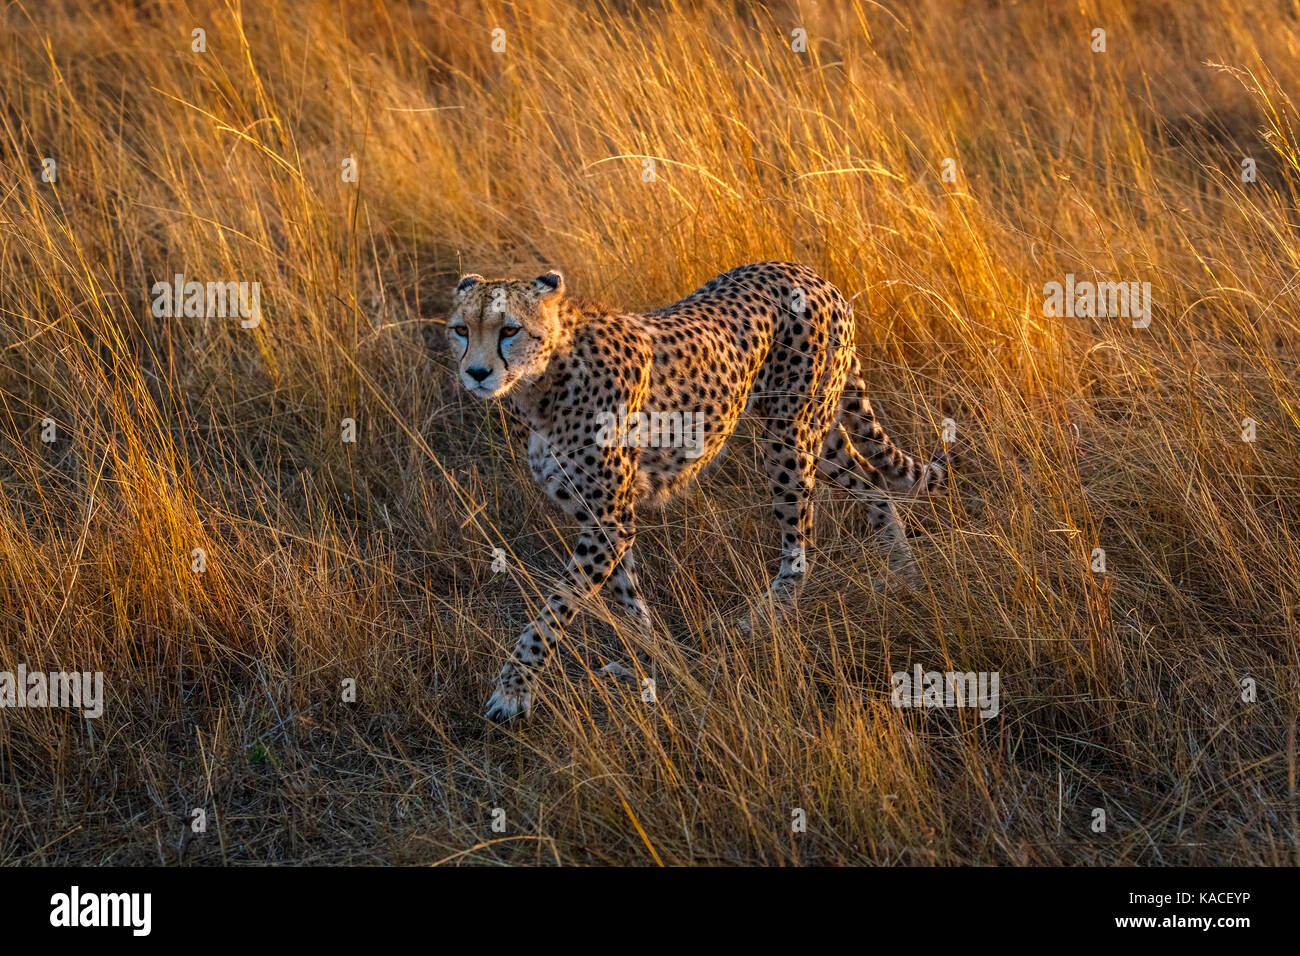 Adult cheetah (Acinonyx jubatus), Masai Mara, Kenya on the prowl walking stealthily through long grass in savannah - Stock Image